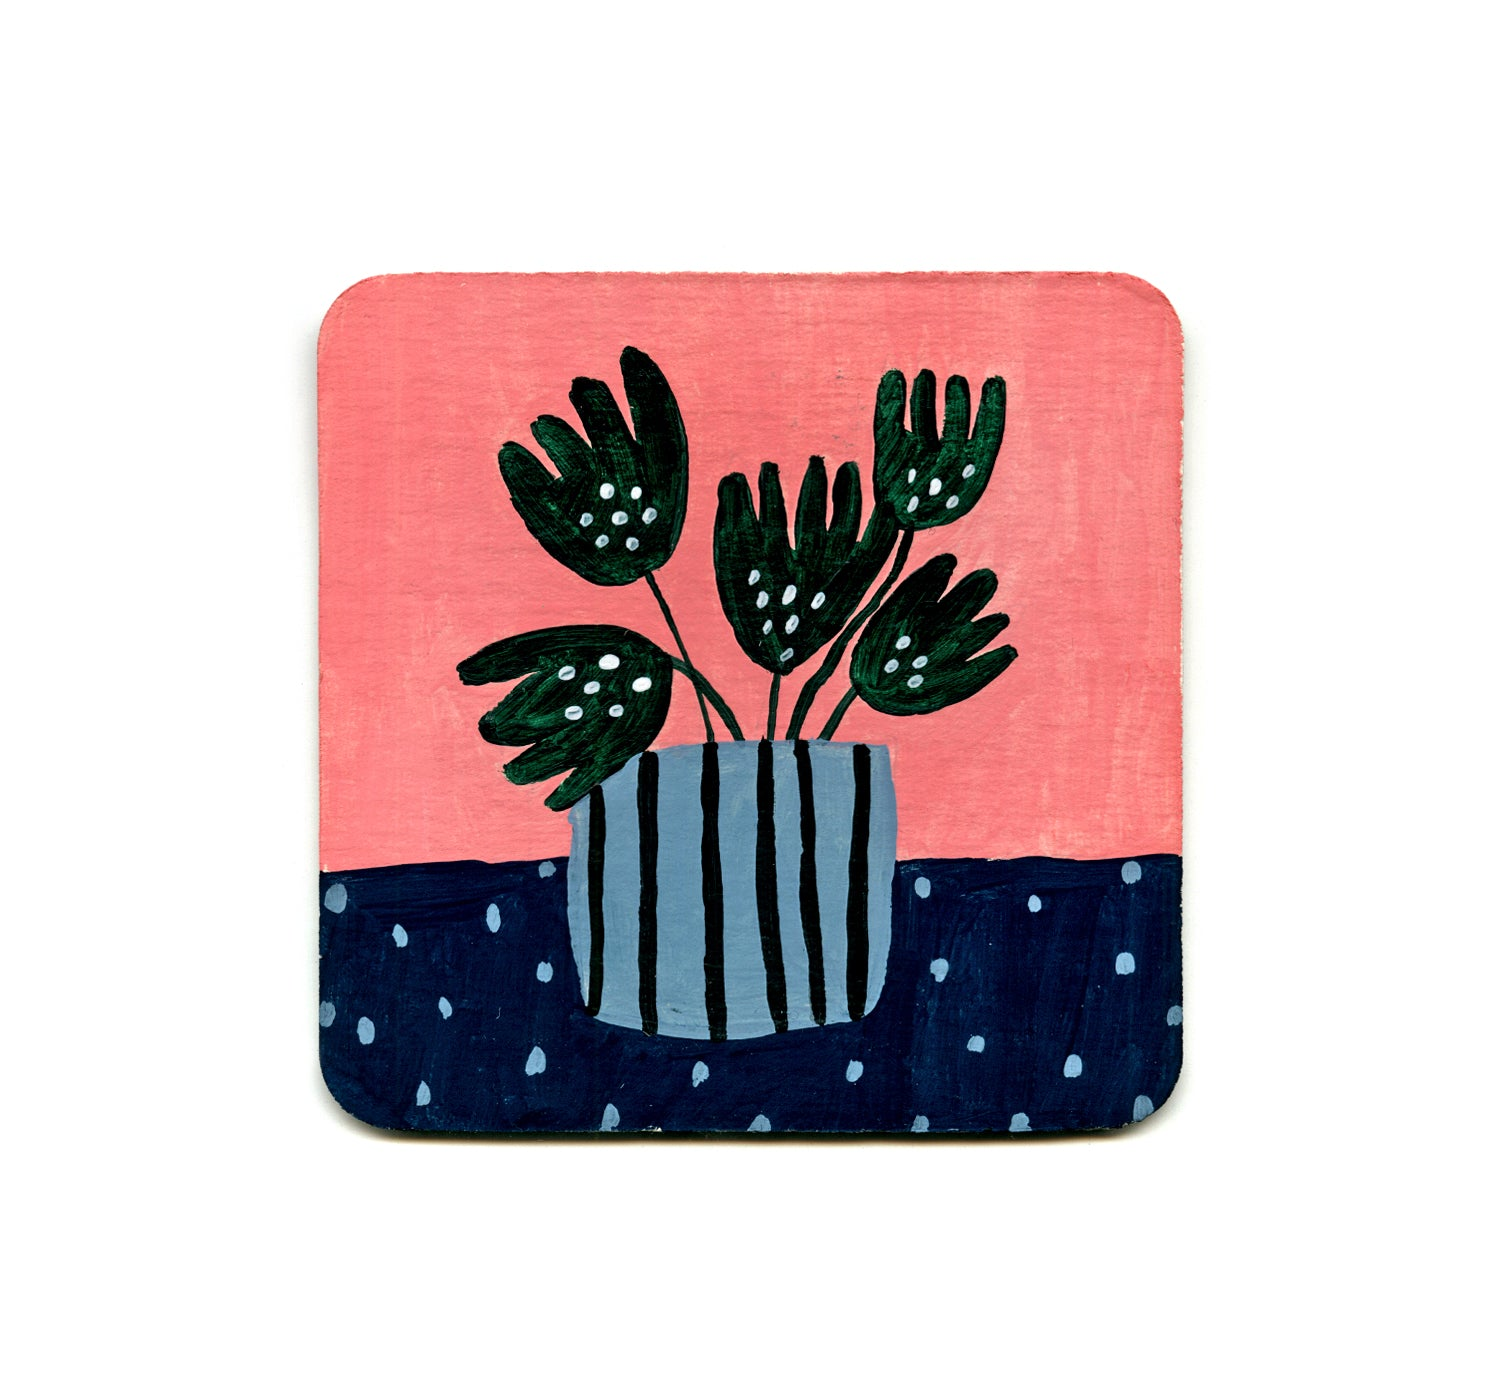 S1 Jennifer Bouron - Plant In Pot Coaster